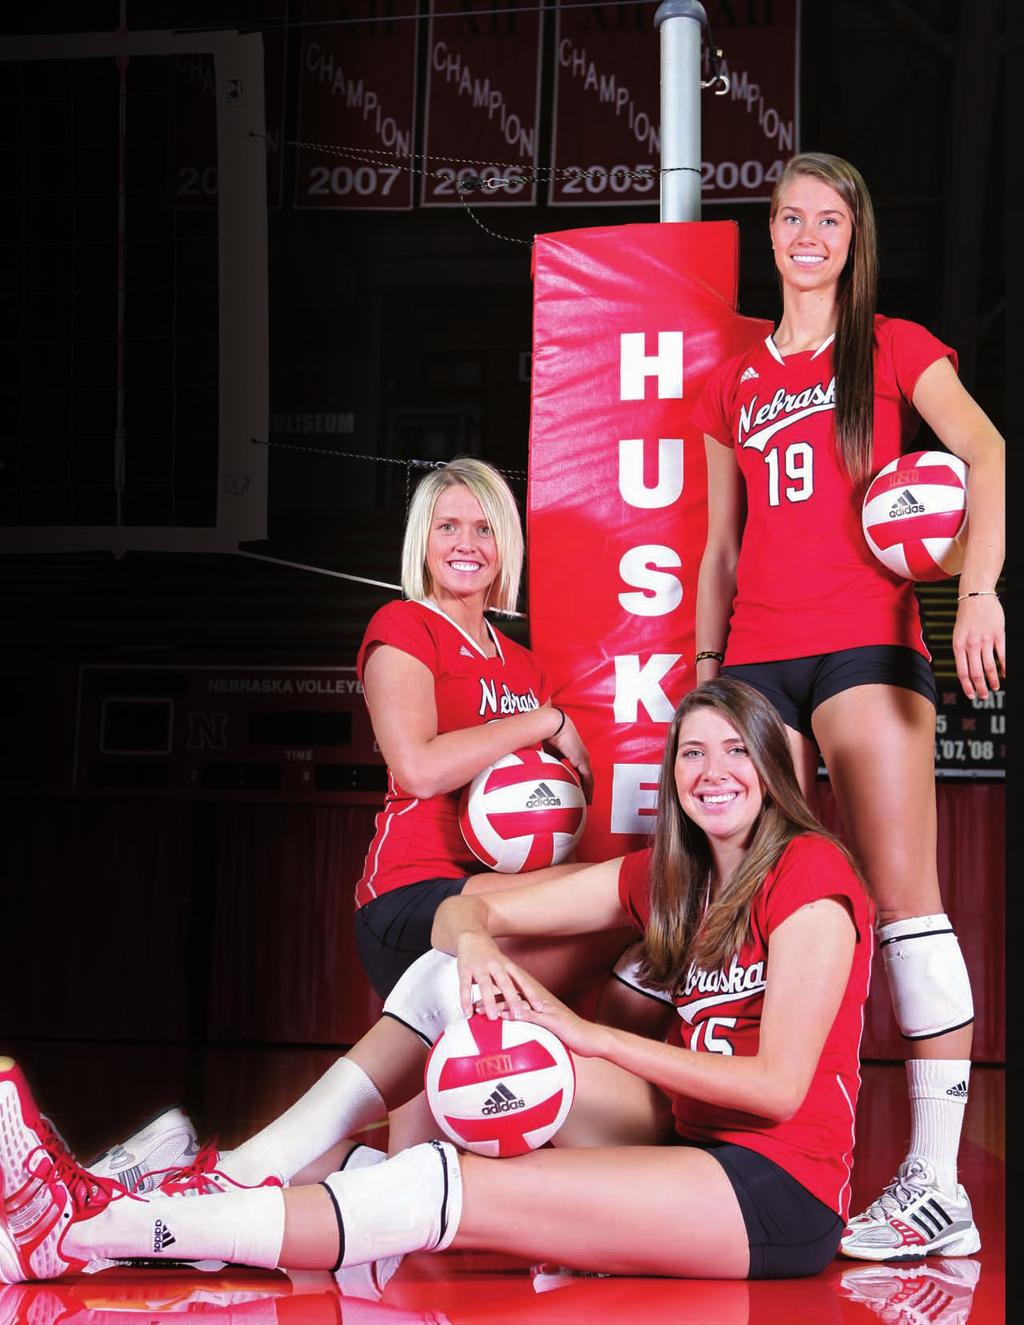 2009 Schedule Runza/AVCA Showcase Fri., Aug. 28 vs. Michigan Qwest Center Omaha 8:30 p.m. Sat., Aug. 29 vs. Minnesota Qwest Center Omaha 8:30 p.m. Tues., Sept. 1 Creighton NU Coliseum 7 p.m. LSU Tournament Fri.